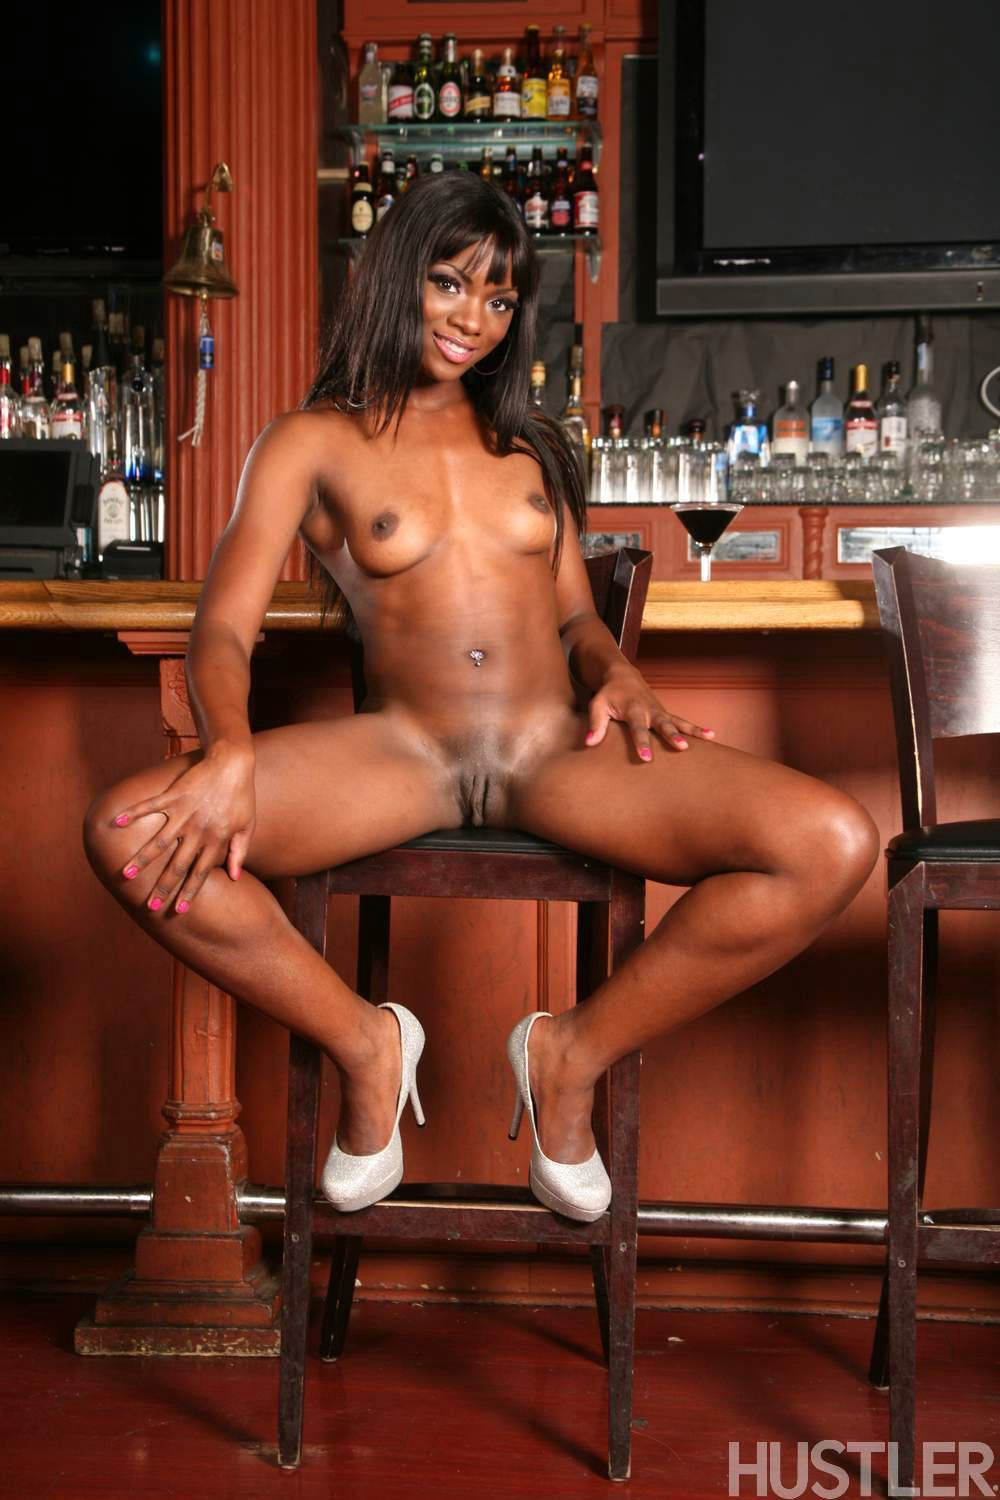 ana foxx in high heels posing at the bar my pornstar book